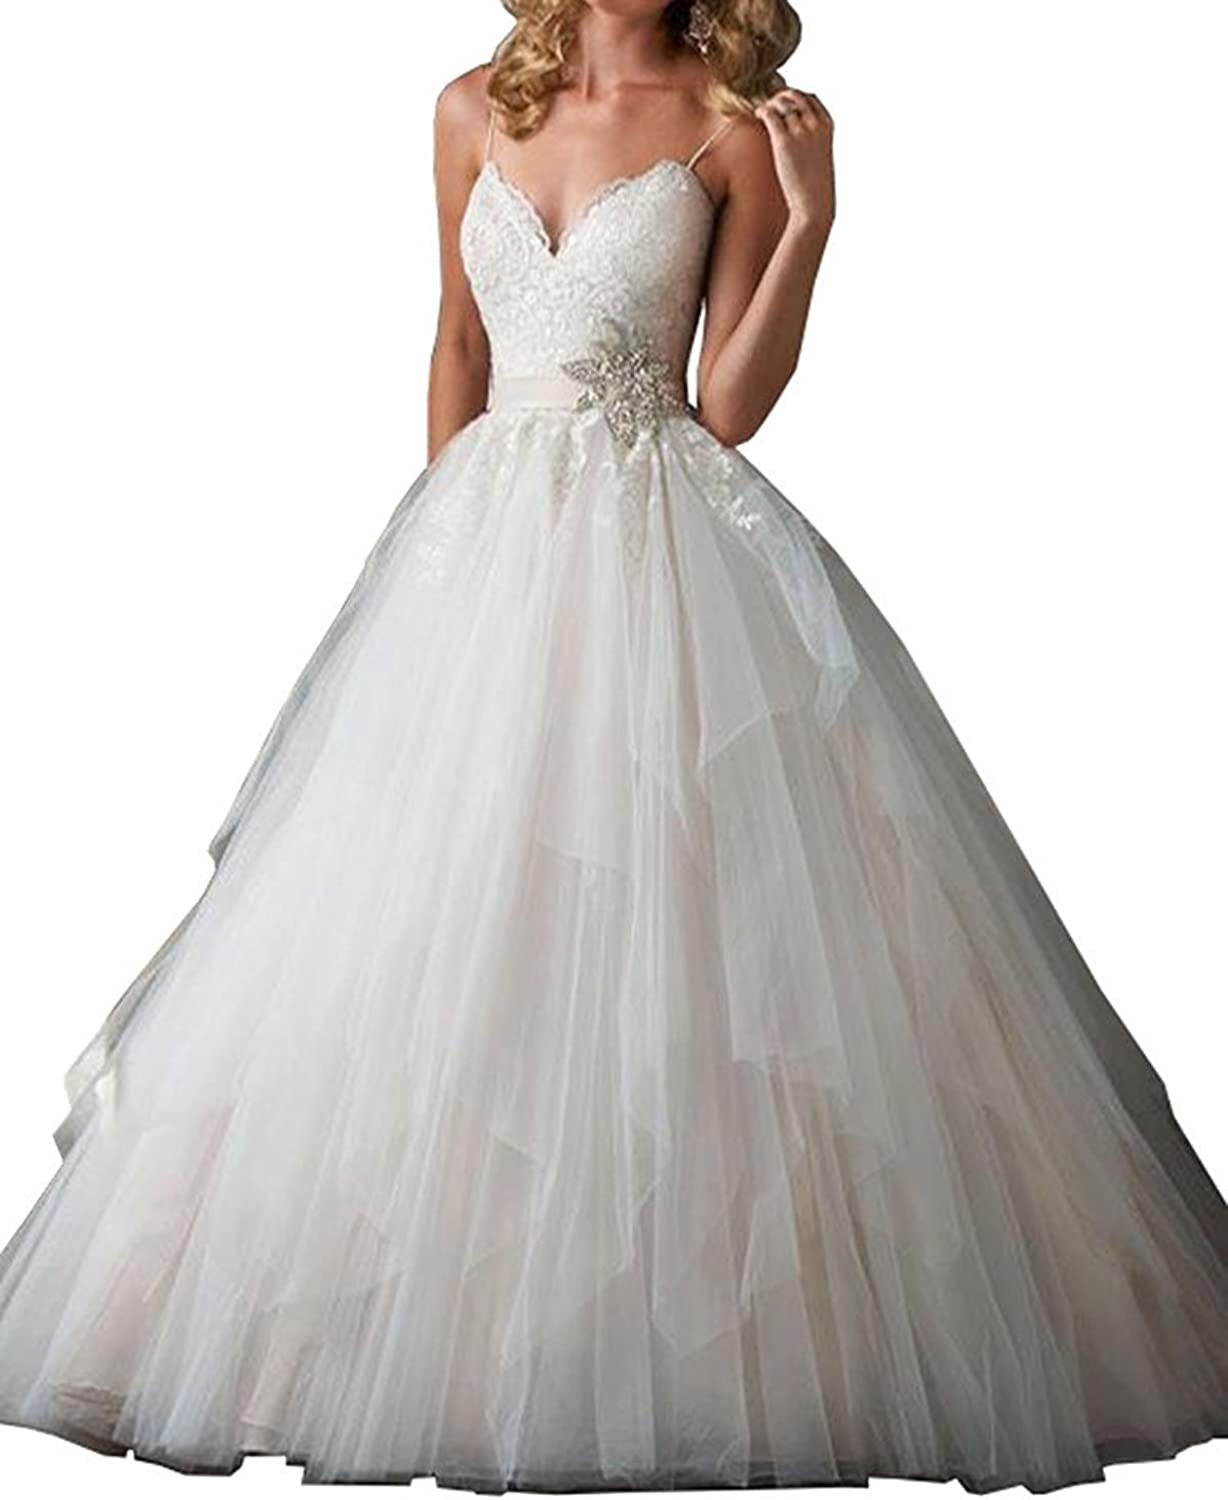 Anlin V Neck Lace Appliques Tulle Ball Gown Wedding Dress with Strap AN300